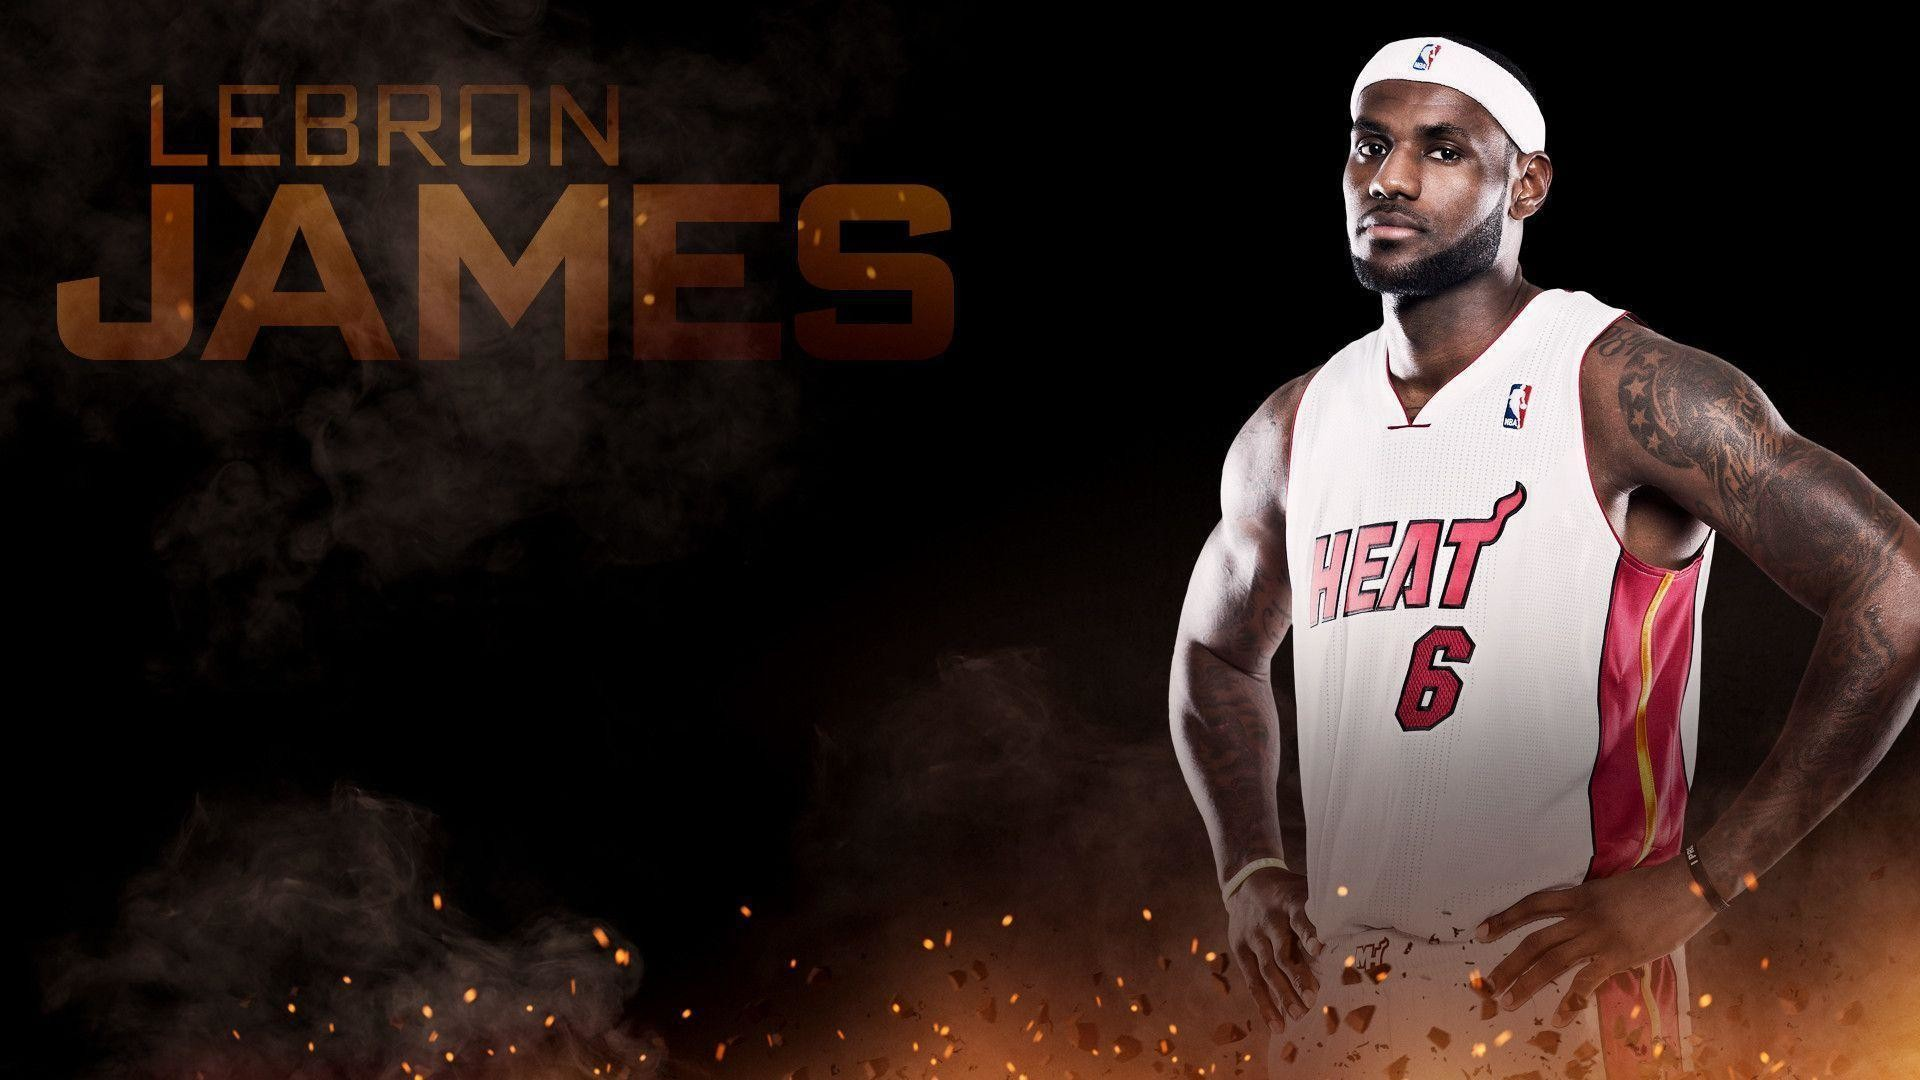 1920x1080 LeBron James Heat HD Wallpaper #191 | TanukinoSippo.